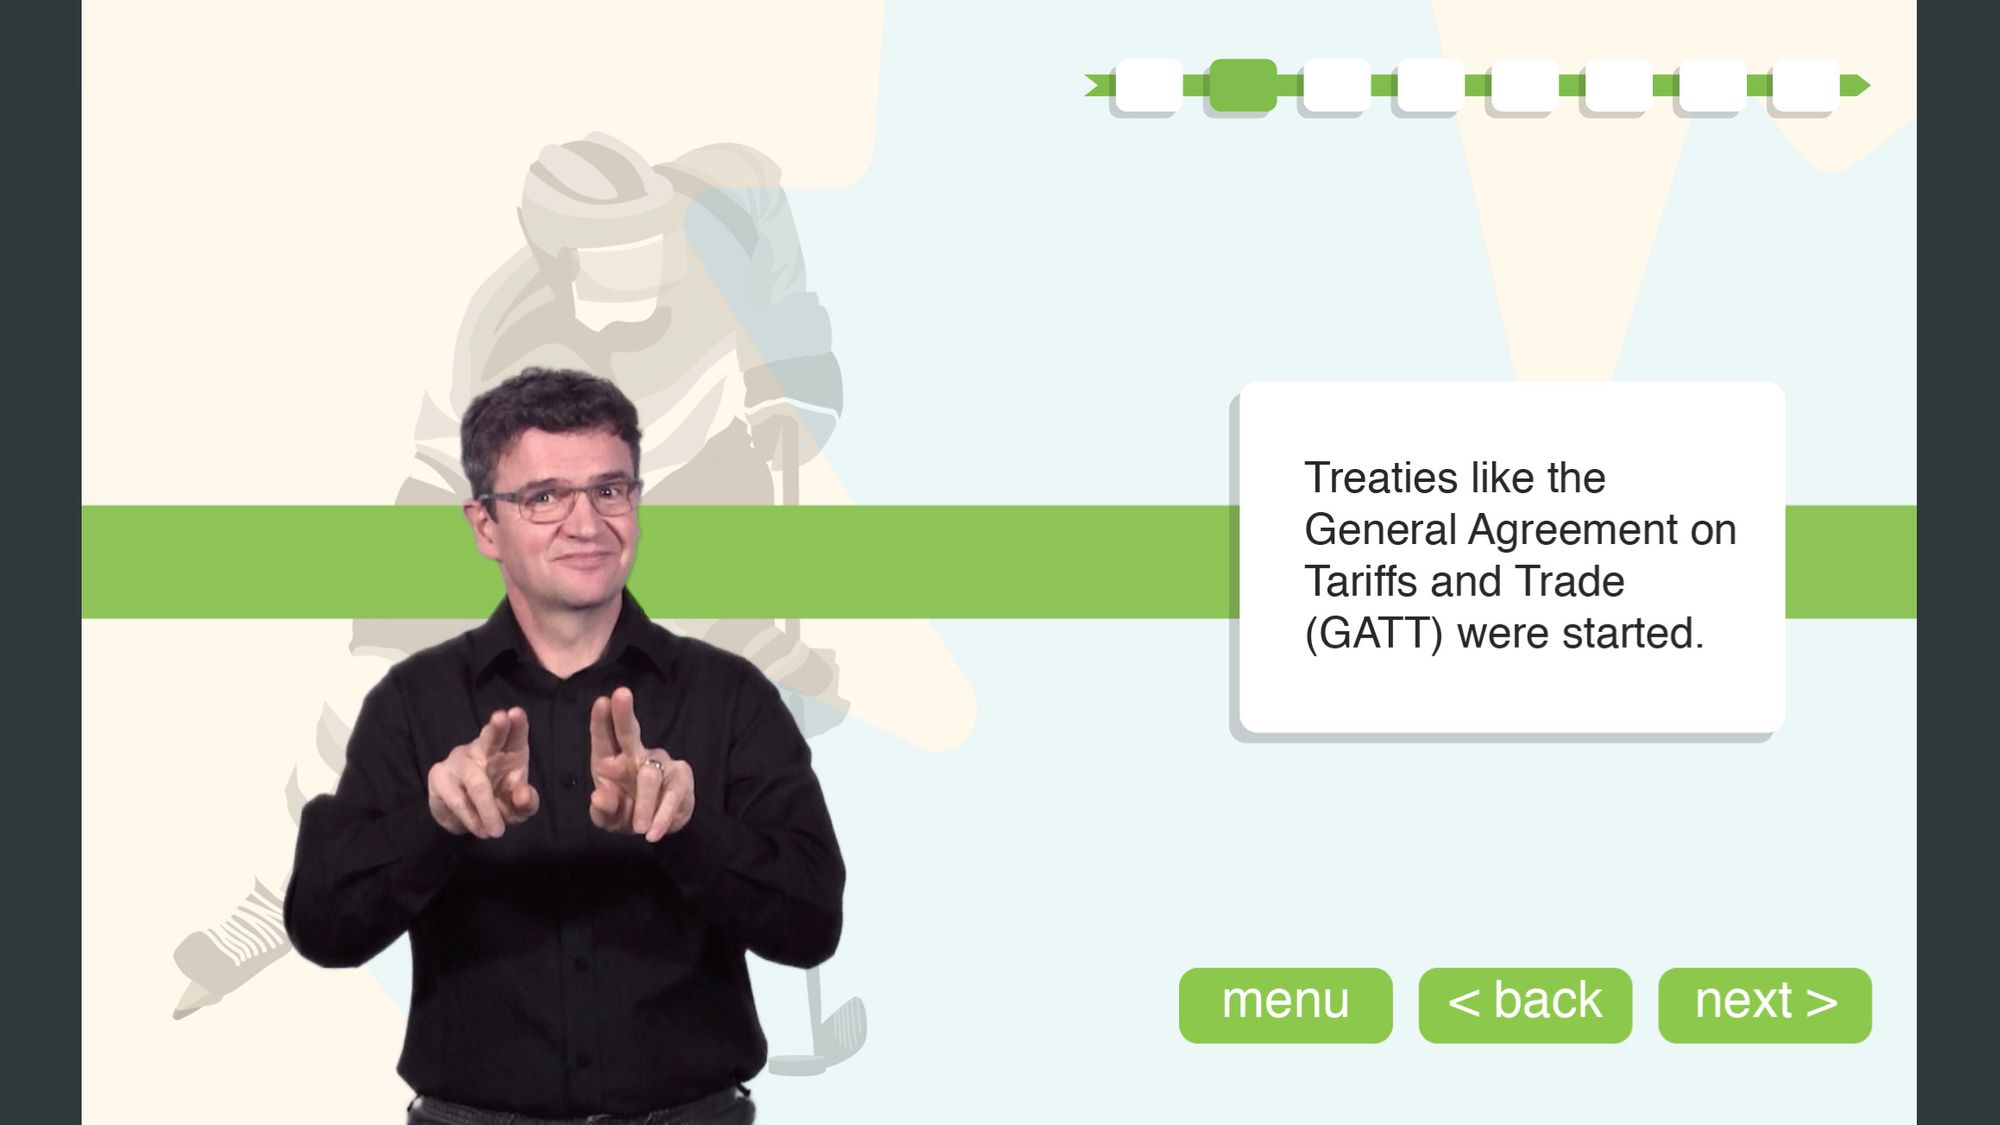 This is a screen cap of a slide from Deaf Learn Now's Citizenship prep course. On the left side of frame, an ASL interpreter is signing. On the right side of the frame is text and navigation buttons.